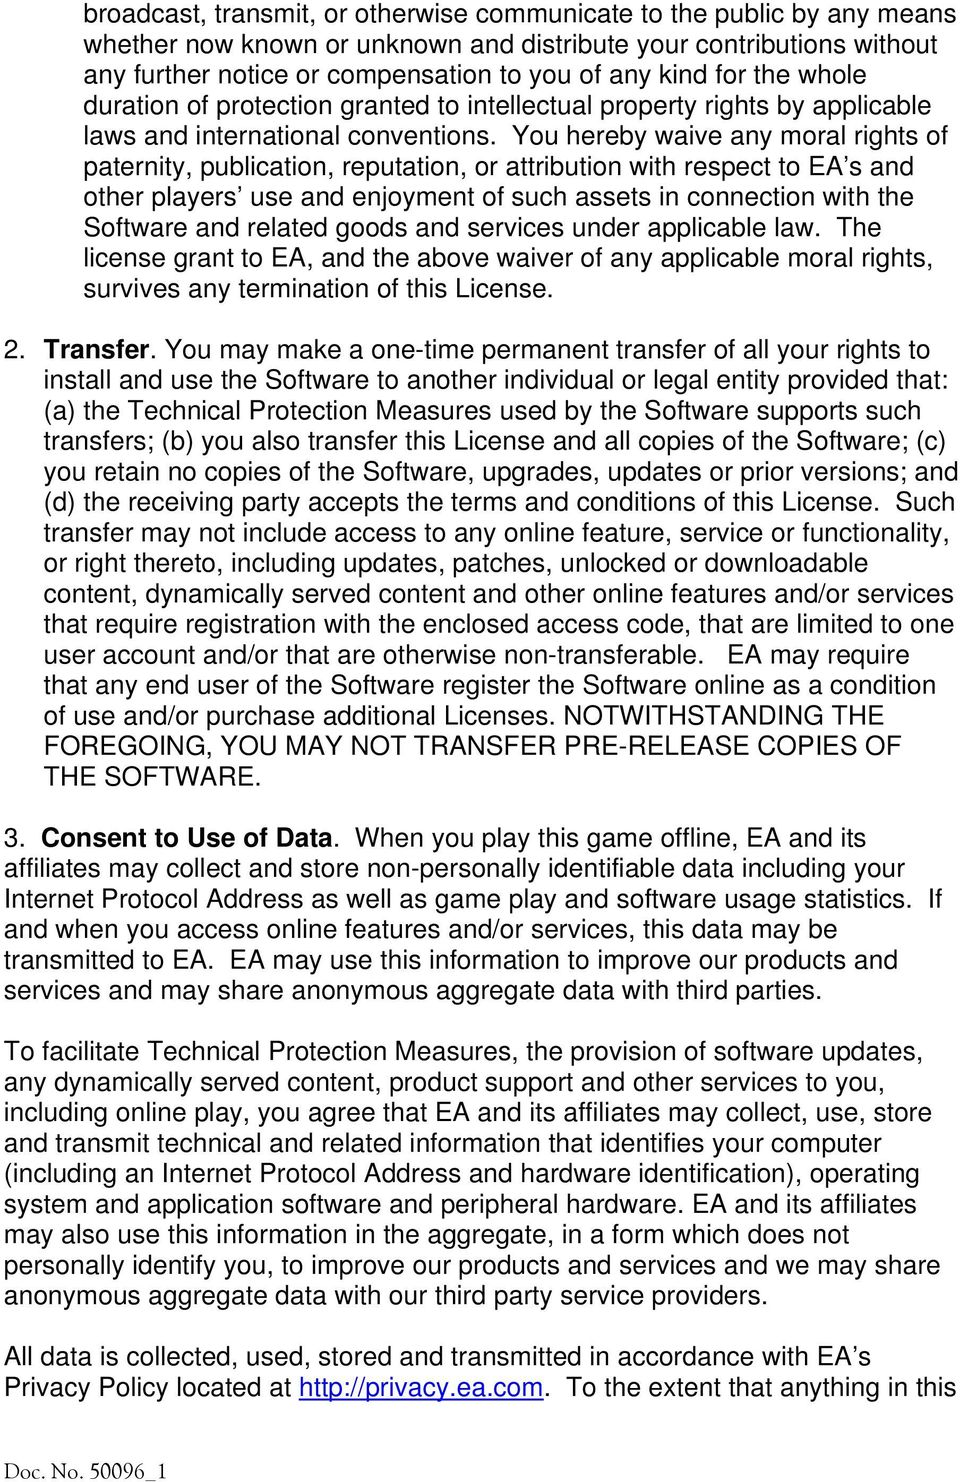 You hereby waive any moral rights of paternity, publication, reputation, or attribution with respect to EA s and other players use and enjoyment of such assets in connection with the Software and